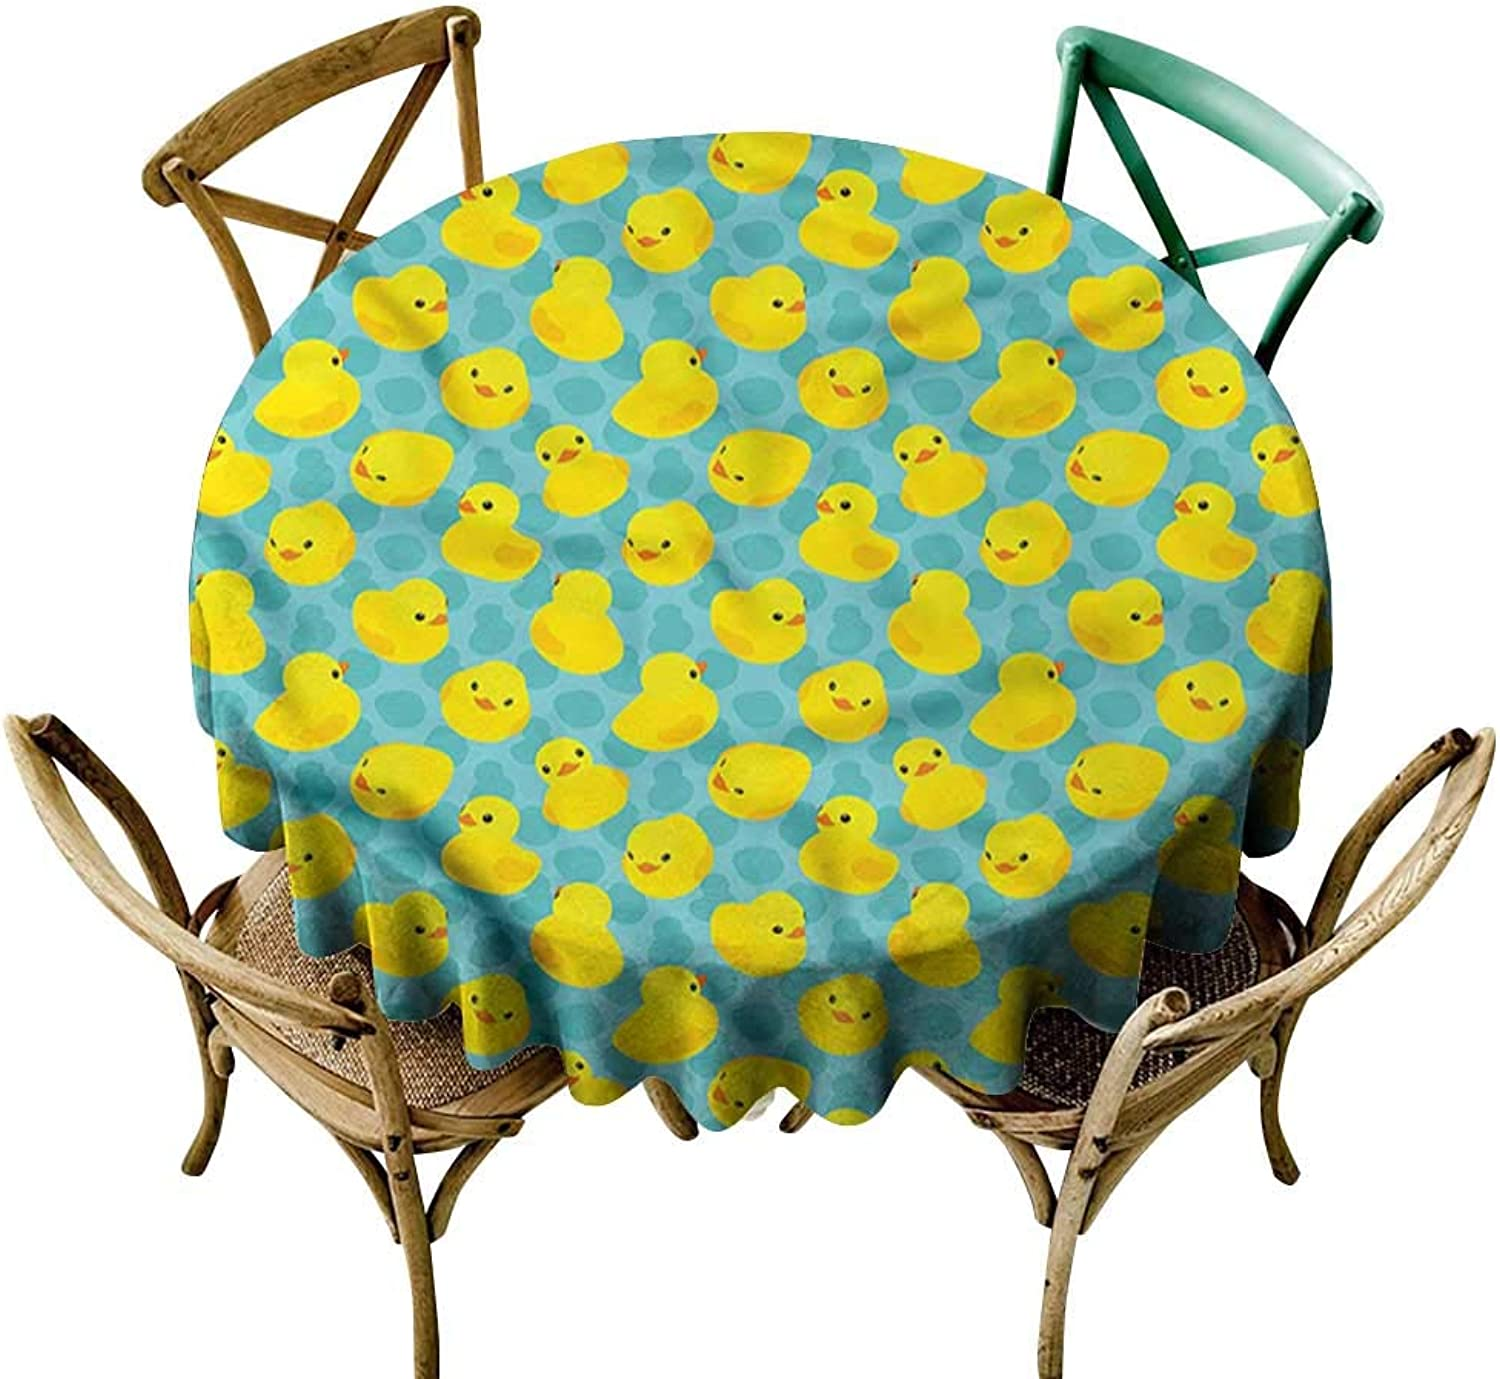 Familytaste Duckies,Spillproof Tablecloths Kids Babies Bathroom Toys D 54  for Round Tables